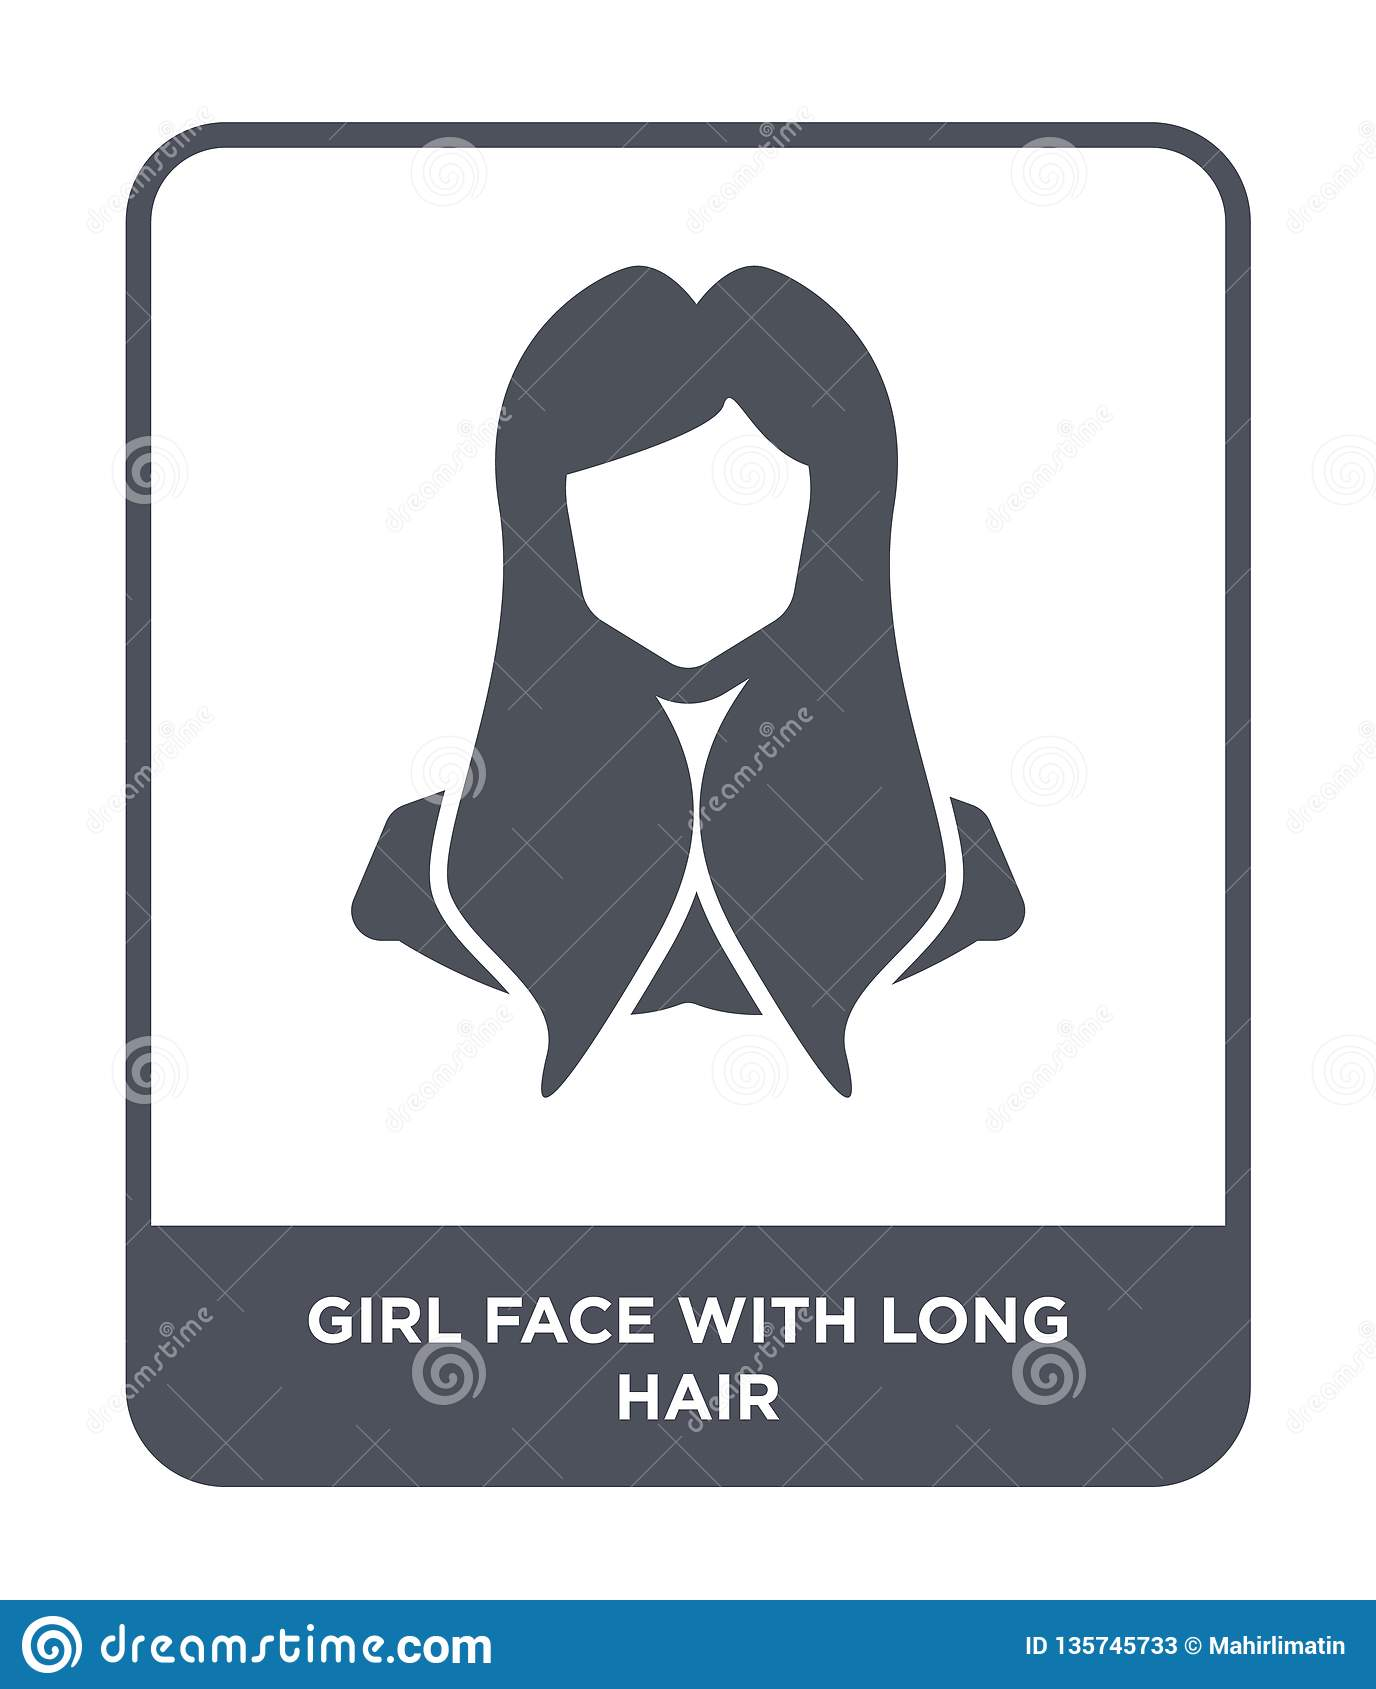 girl face with long hair icon in trendy design style. girl face with long hair icon isolated on white background. girl face with